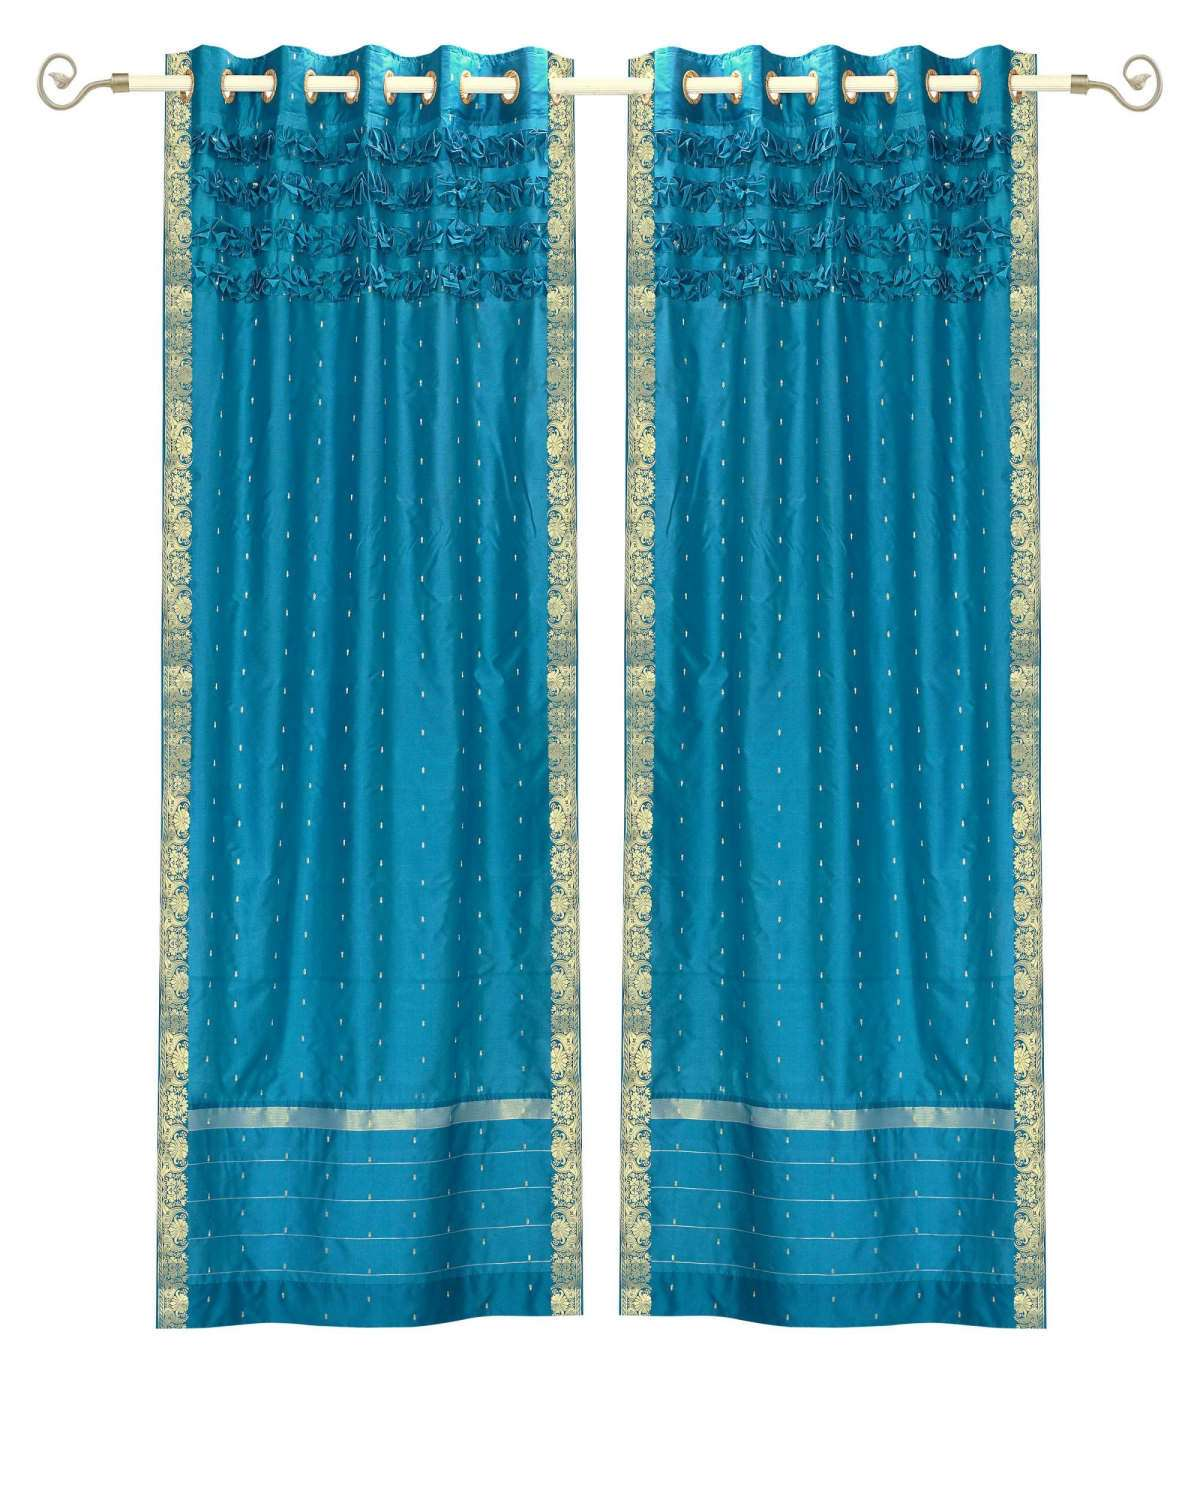 Turquoise Hand Crafted Grommet Top  Sheer Sari Curtain  Drape  Panel   - 43W x 63L - Piece